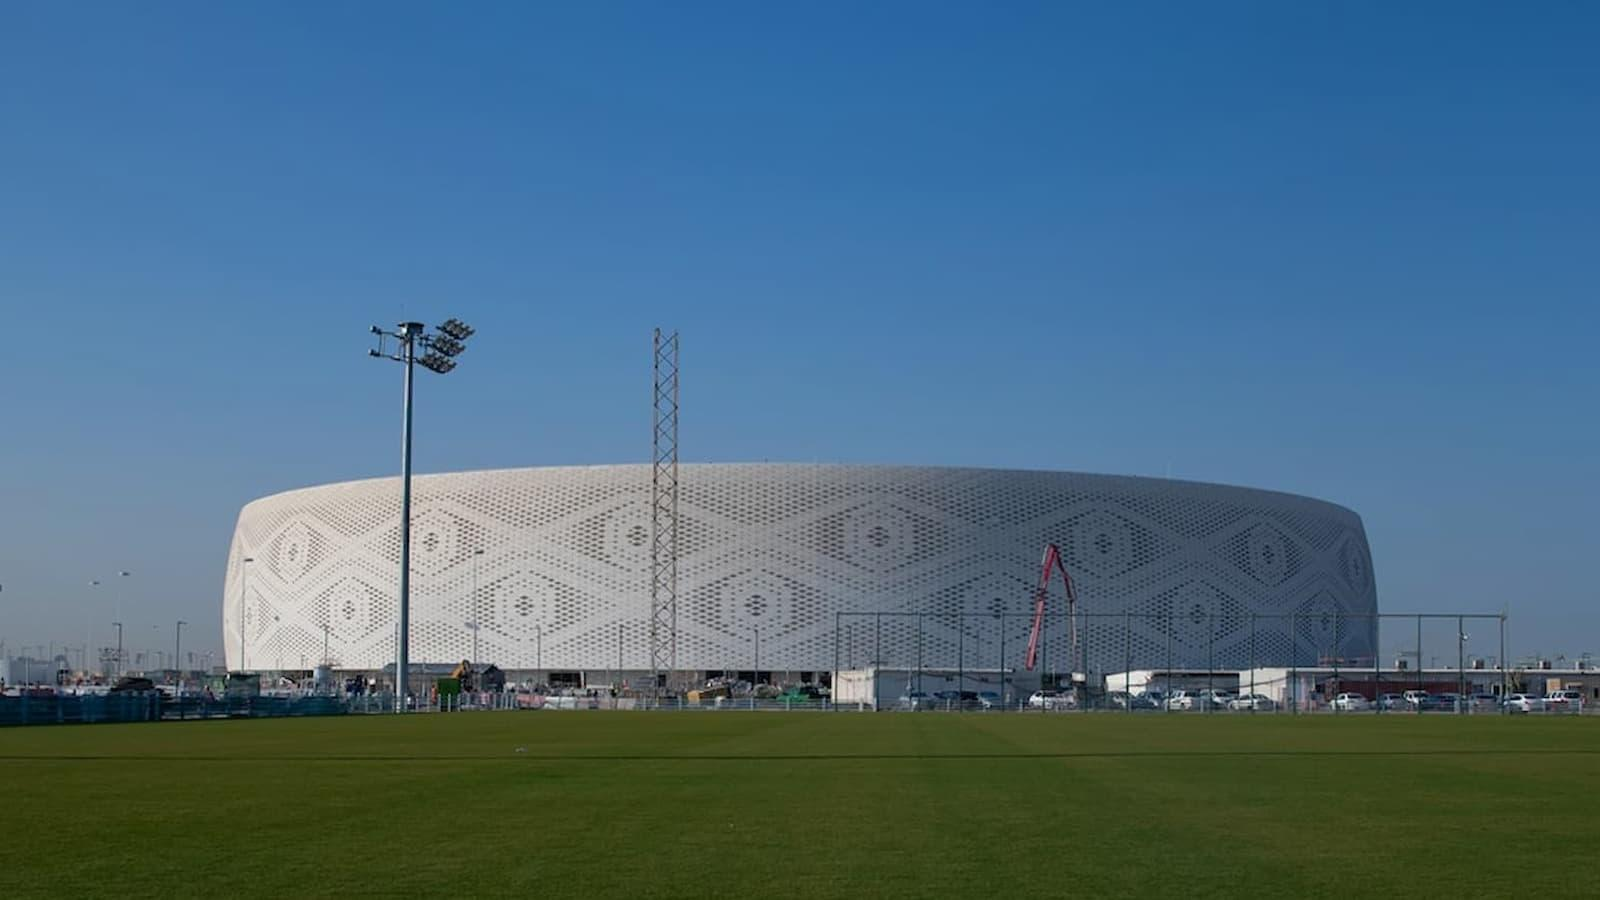 6th FIFA World Cup Qatar 2022 Stadium completed; venue to host 2021 Amir Cup Final